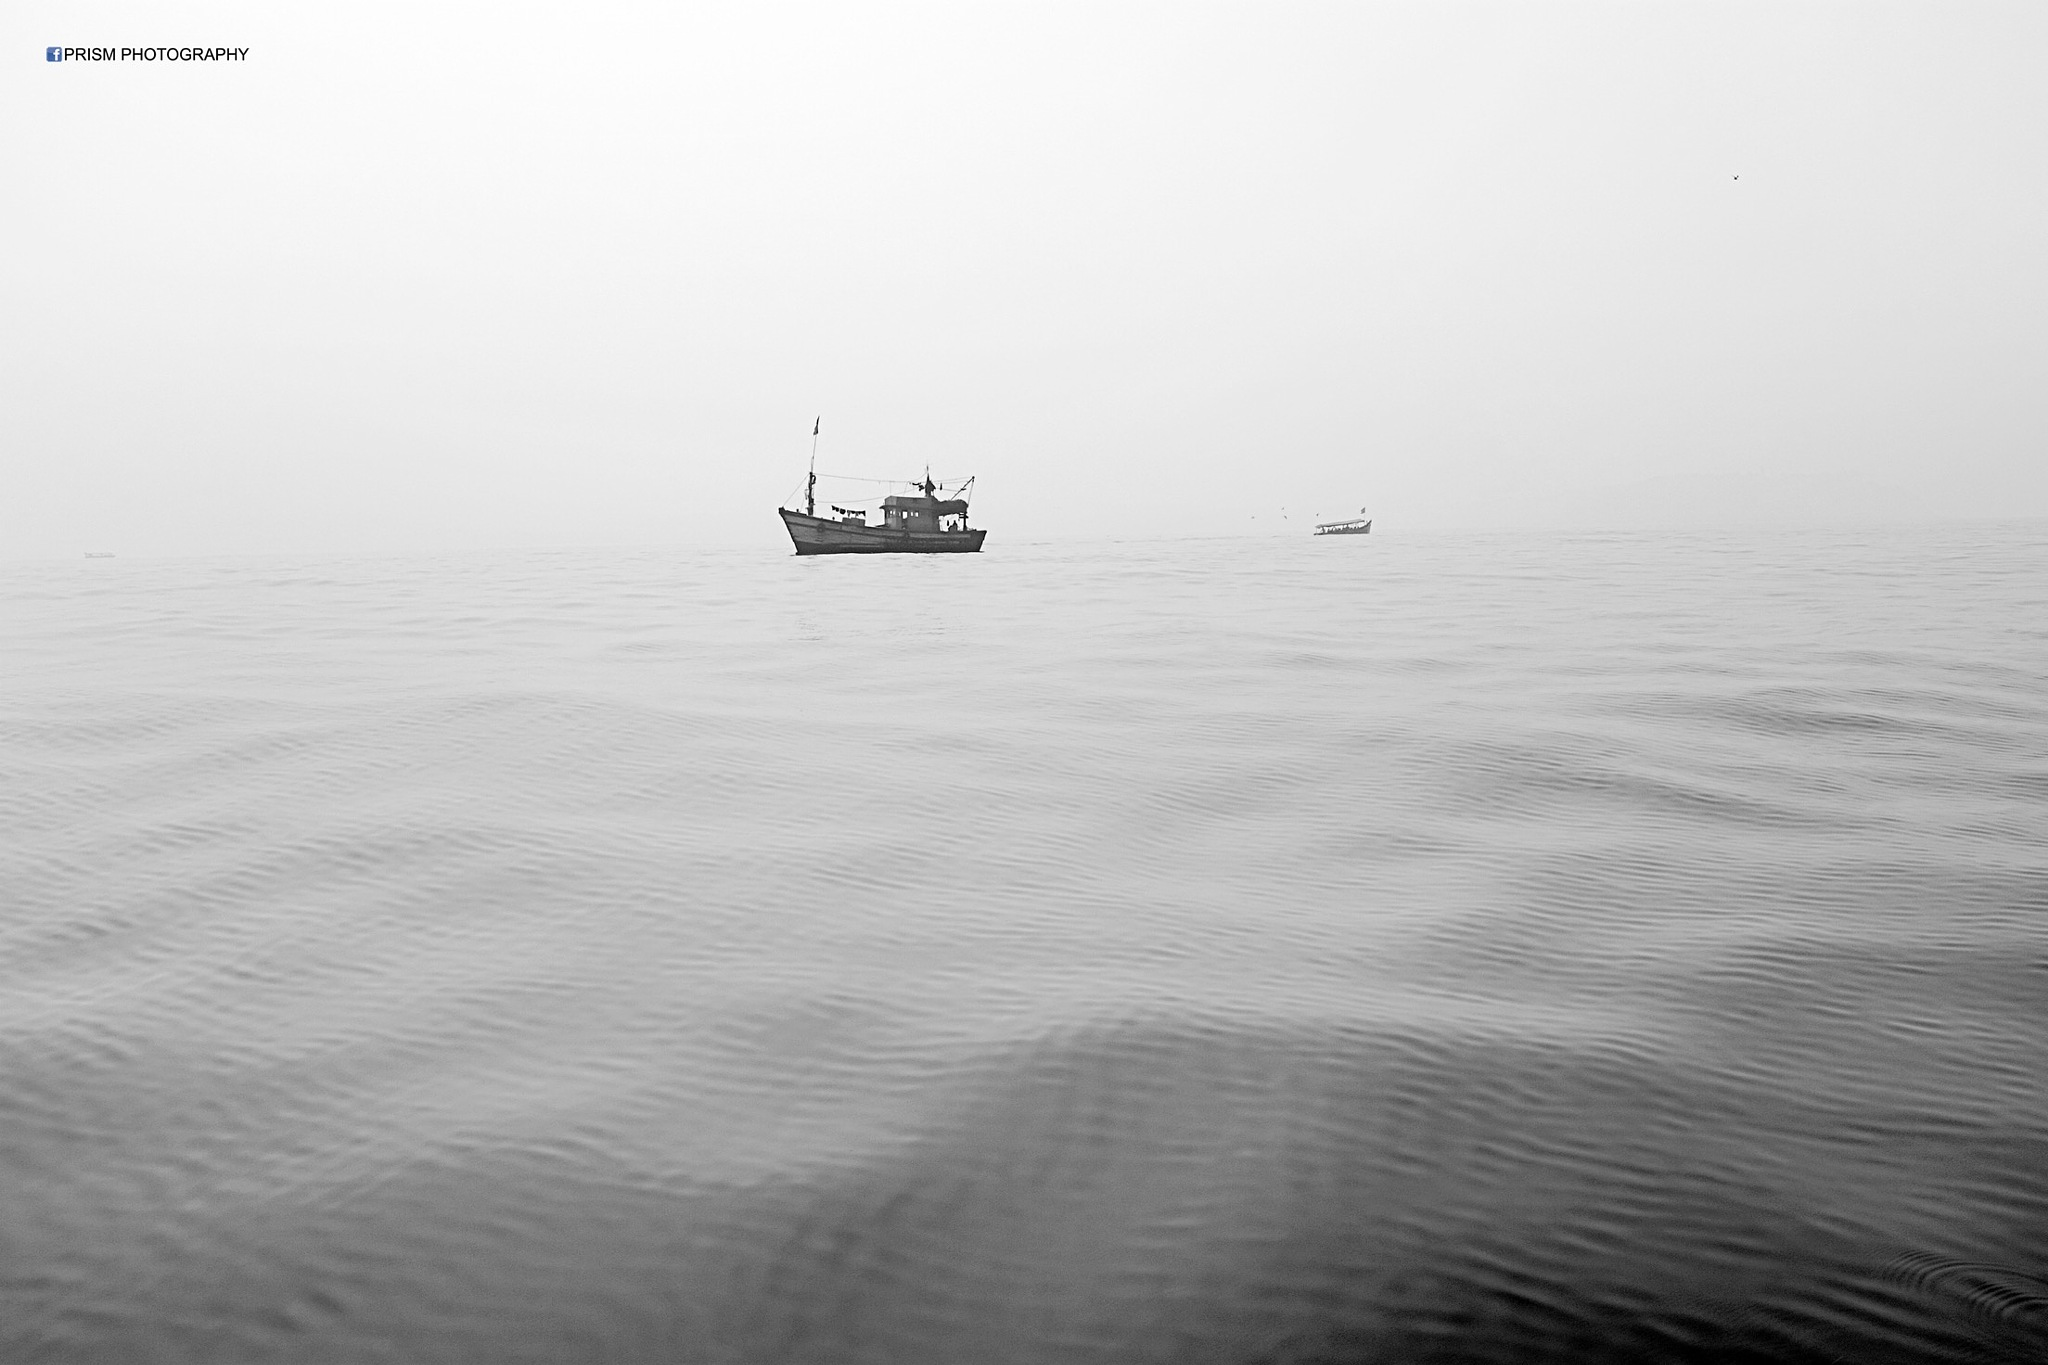 Untitled by Rajesh Prism